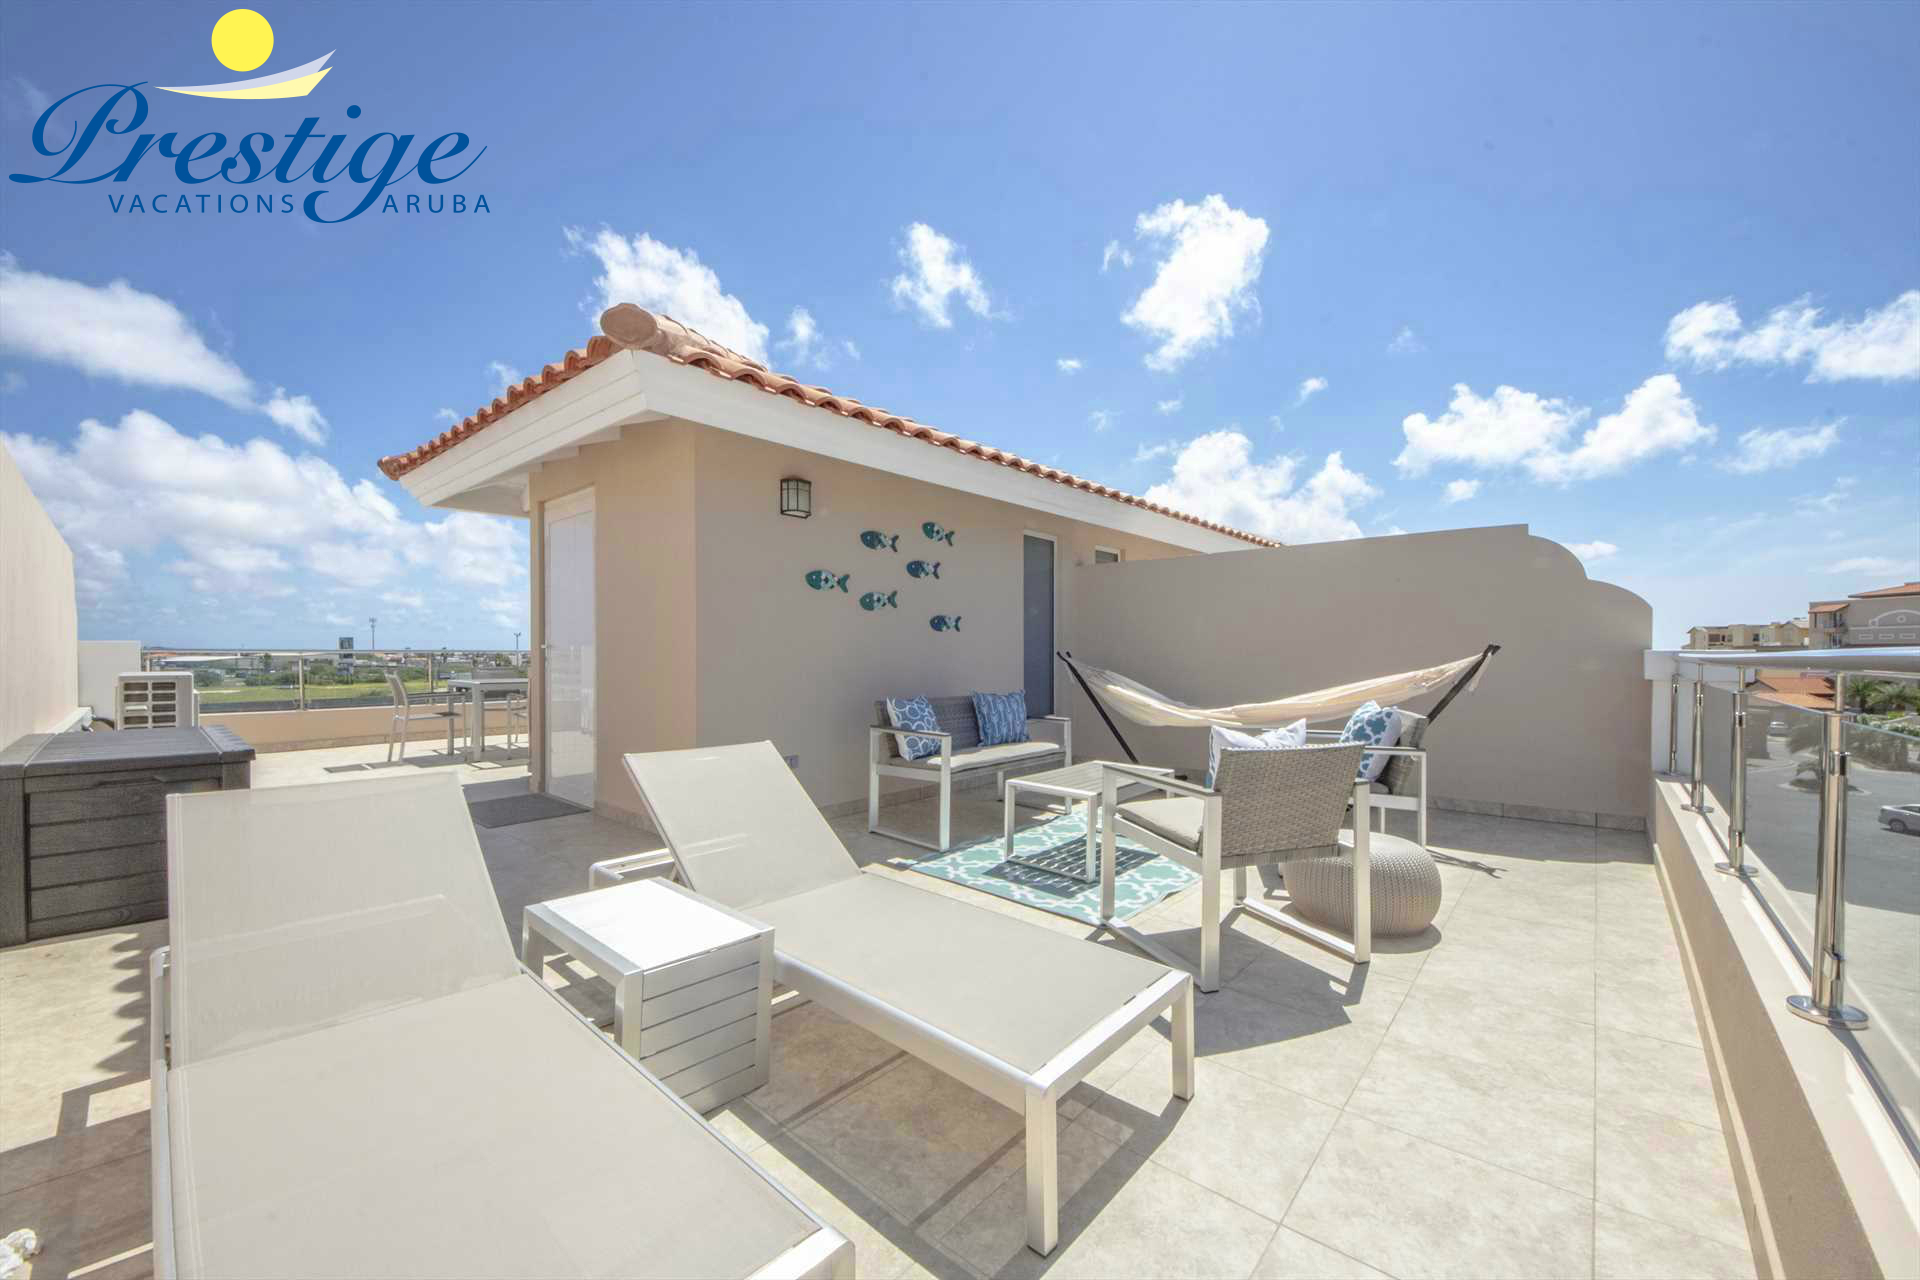 Private rooftop terrace with an outdoor seating area, chaise lounges and hammock